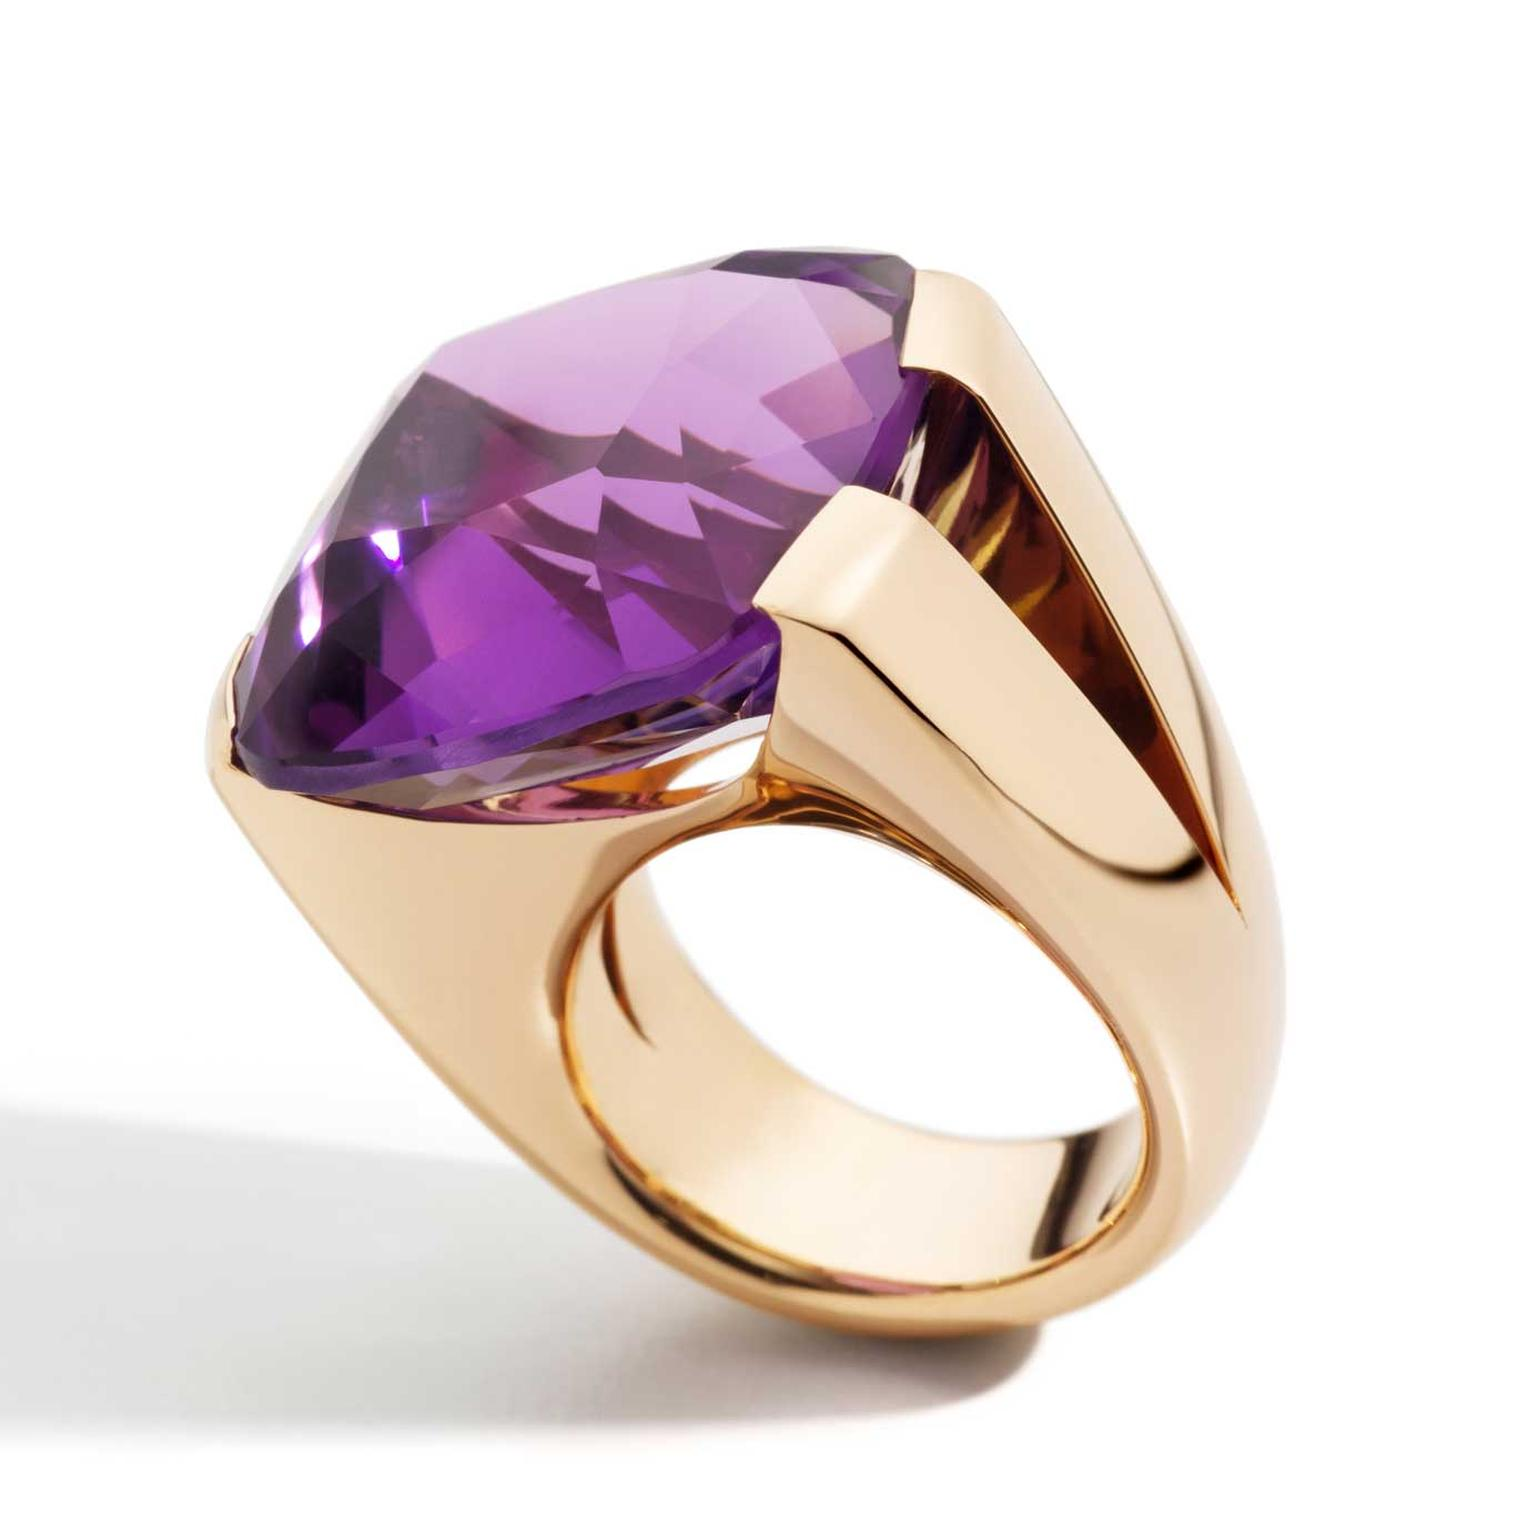 Vhernier Cuscino amethyst ring in rose gold